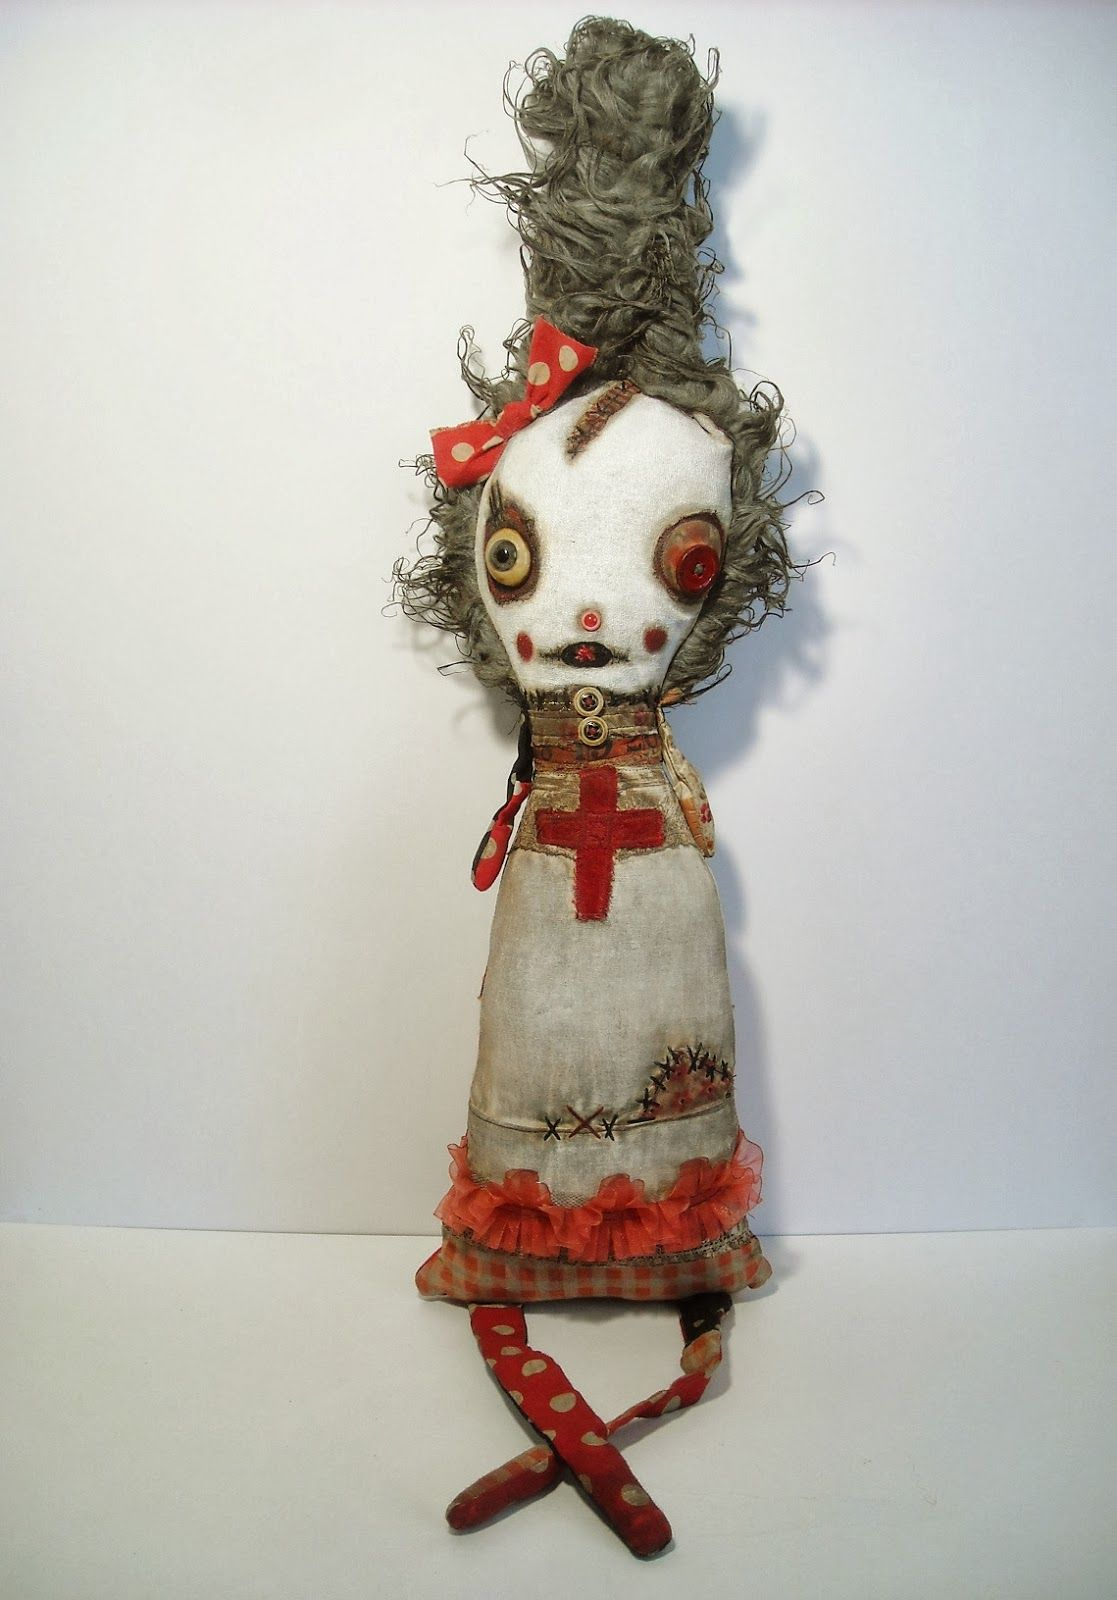 Junker Jane Art Dolls and Soft Sculptures: Parlor Gallery show Do-Re-Mi